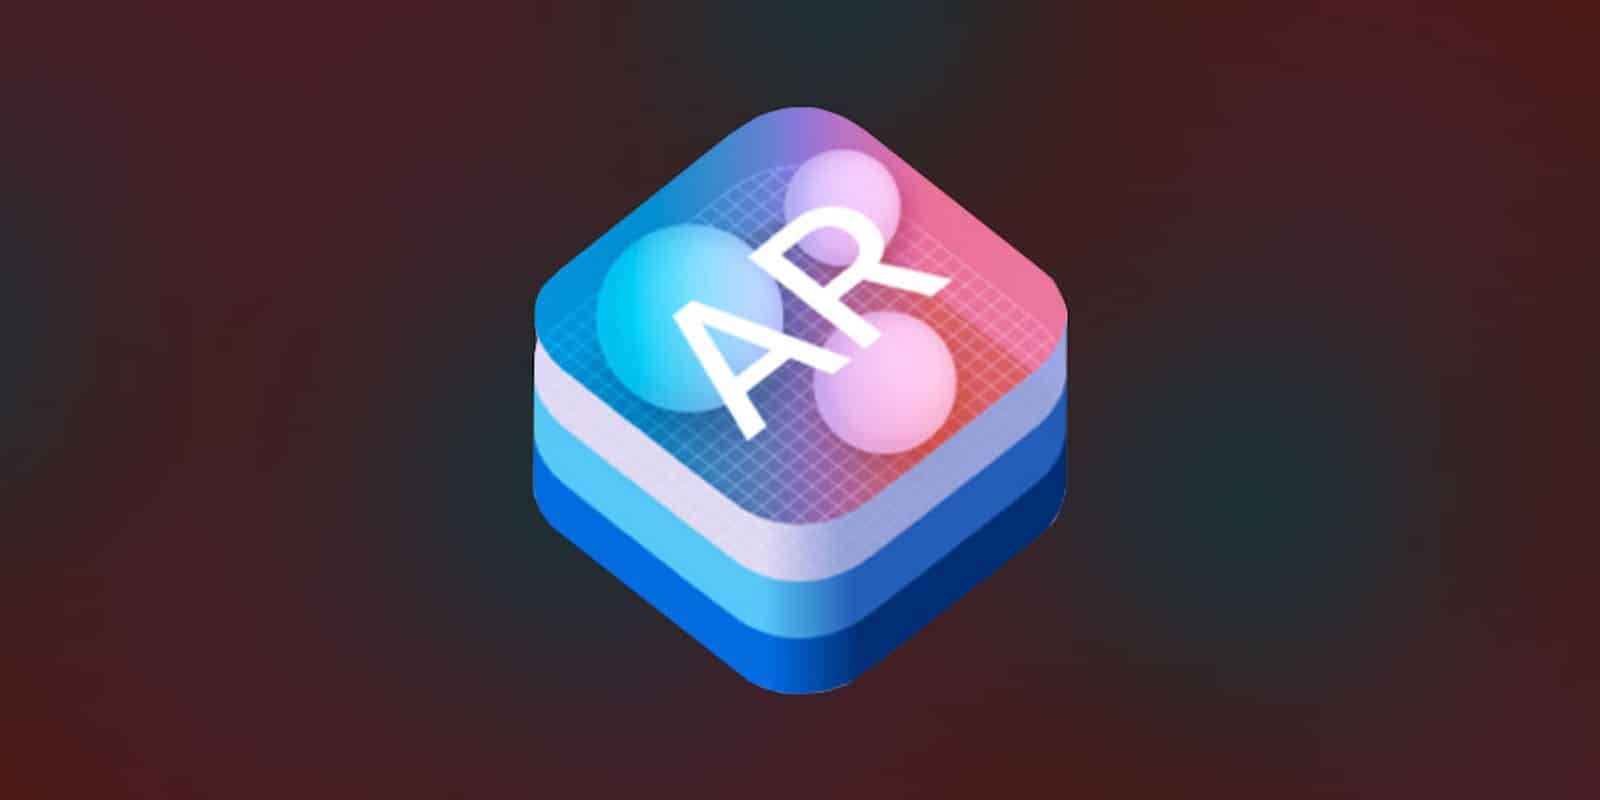 Learn how to build working, immersive AR apps in iOS 11.